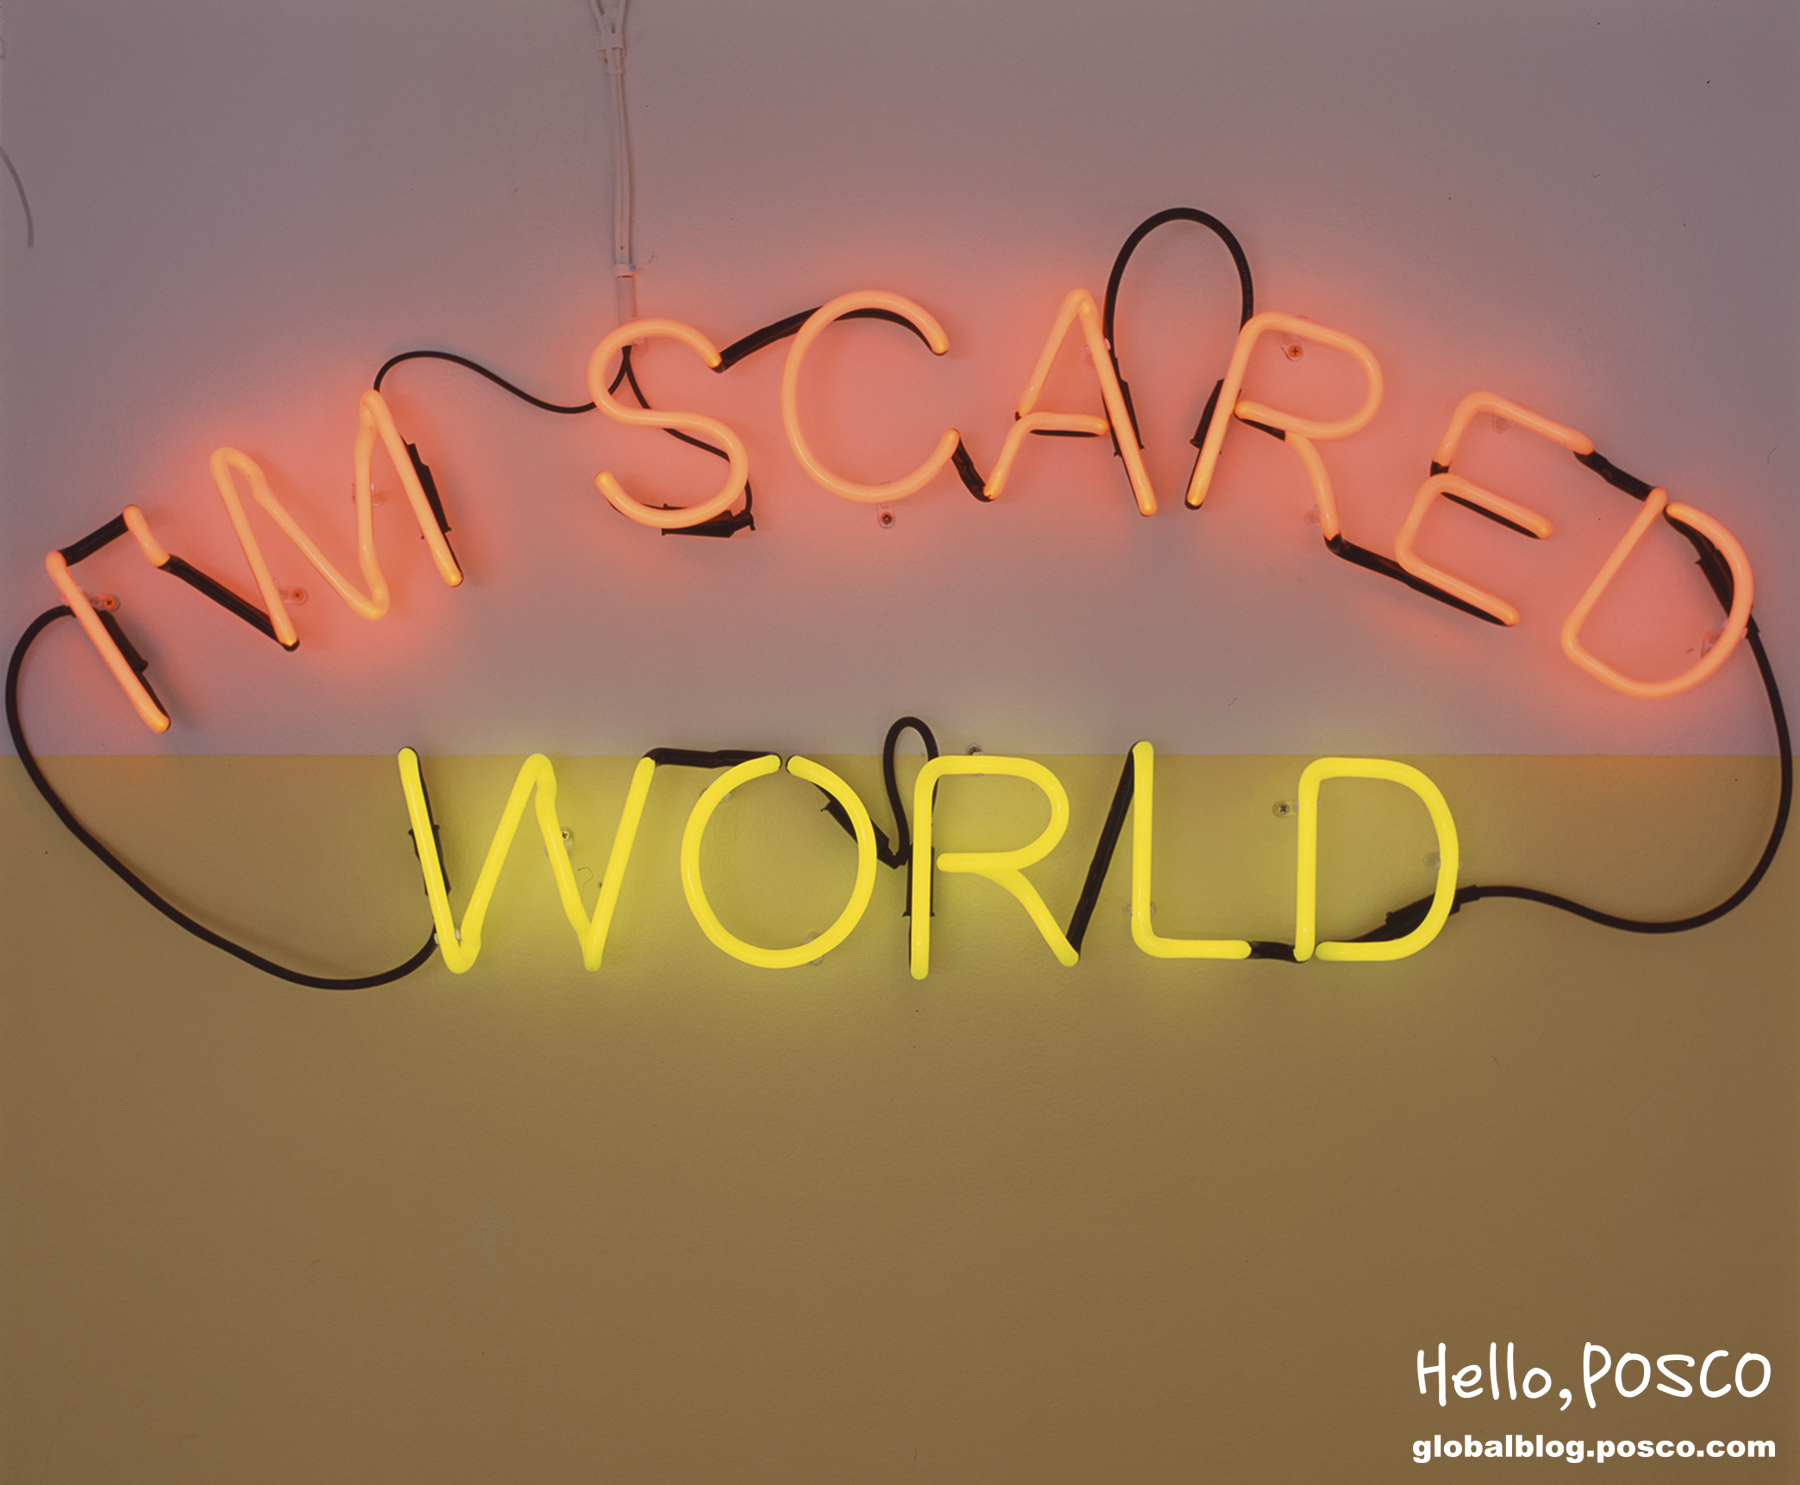 Kiron Robinson I_m Scared World, 2006 (detail), Neon, 50 x 120cm, Image courtesy of the artist and Sarah Scout, Melbourne